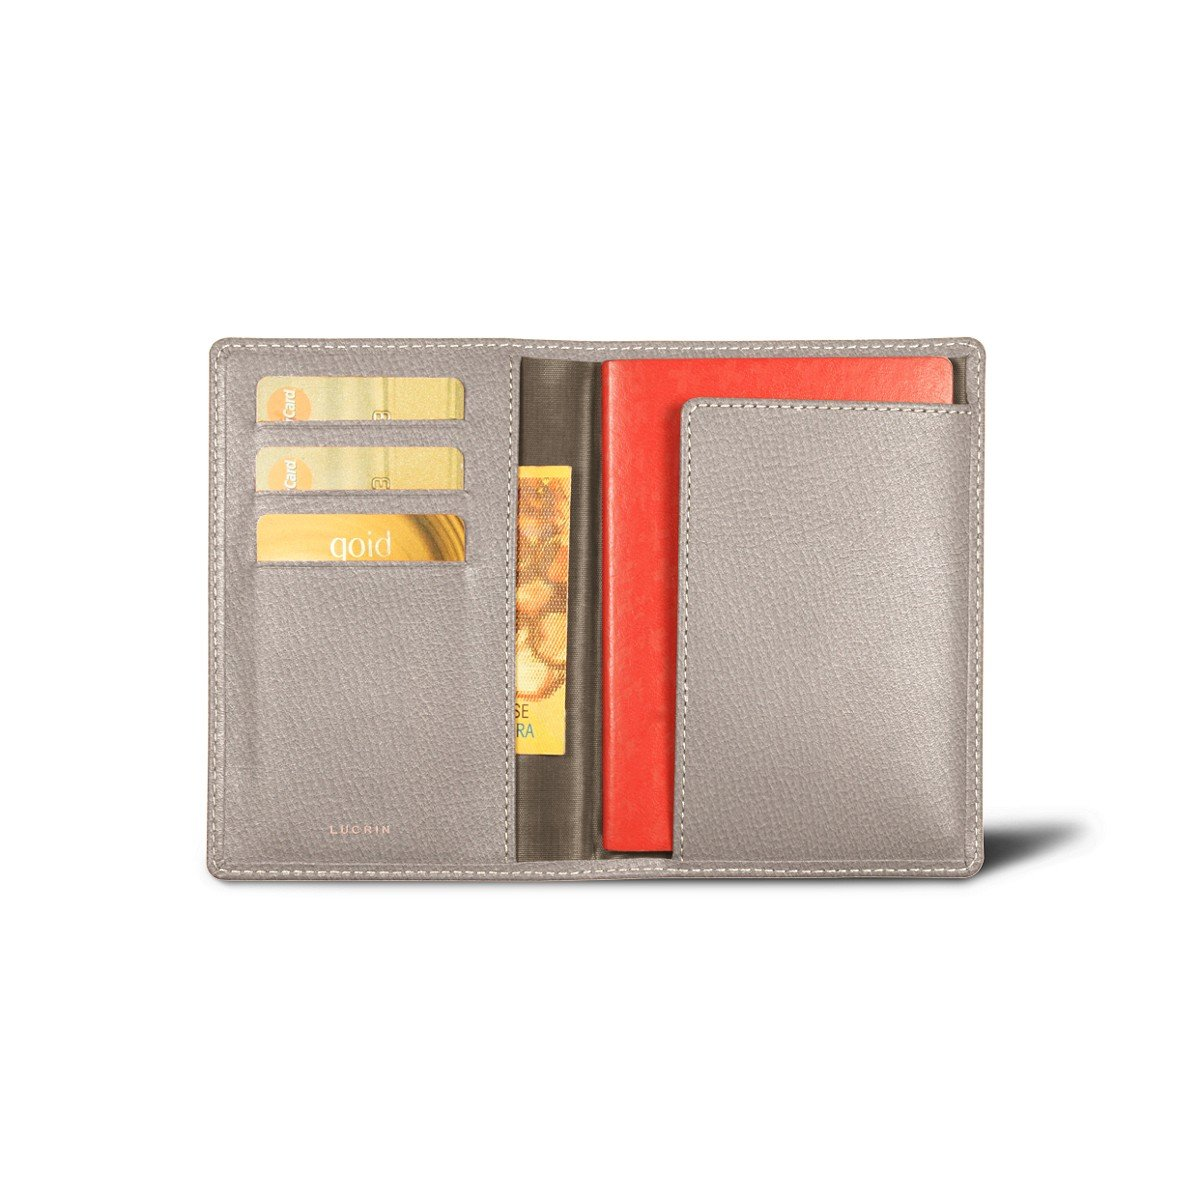 Lucrin - Passport and Loyalty Card Holder - Light Taupe - Goat Leather